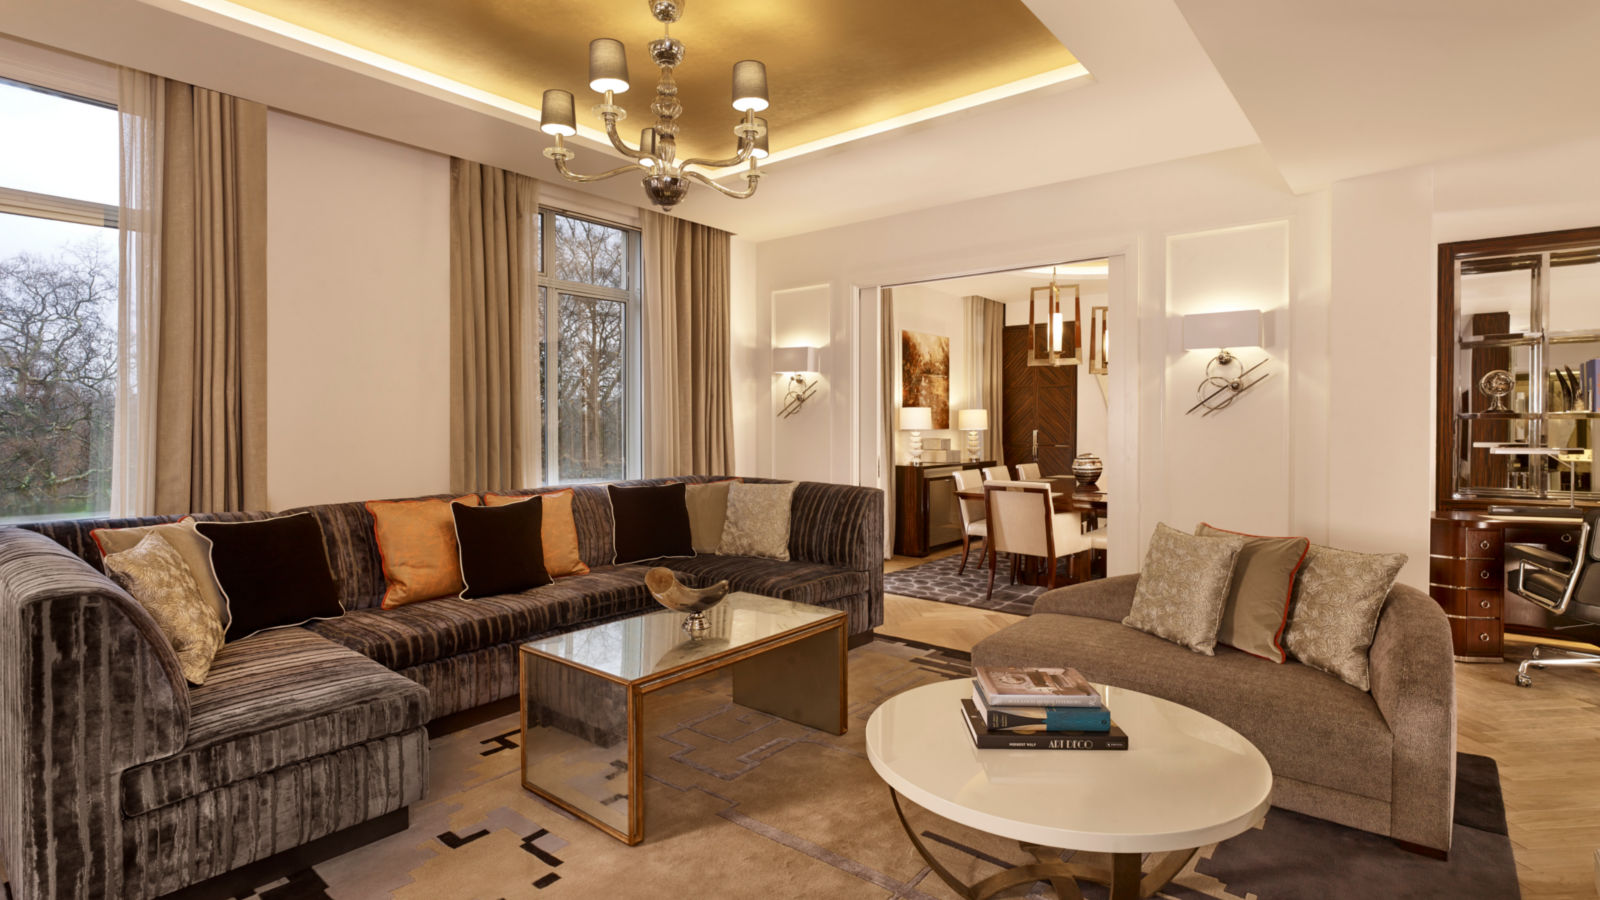 Luxury Hotel Suite in London